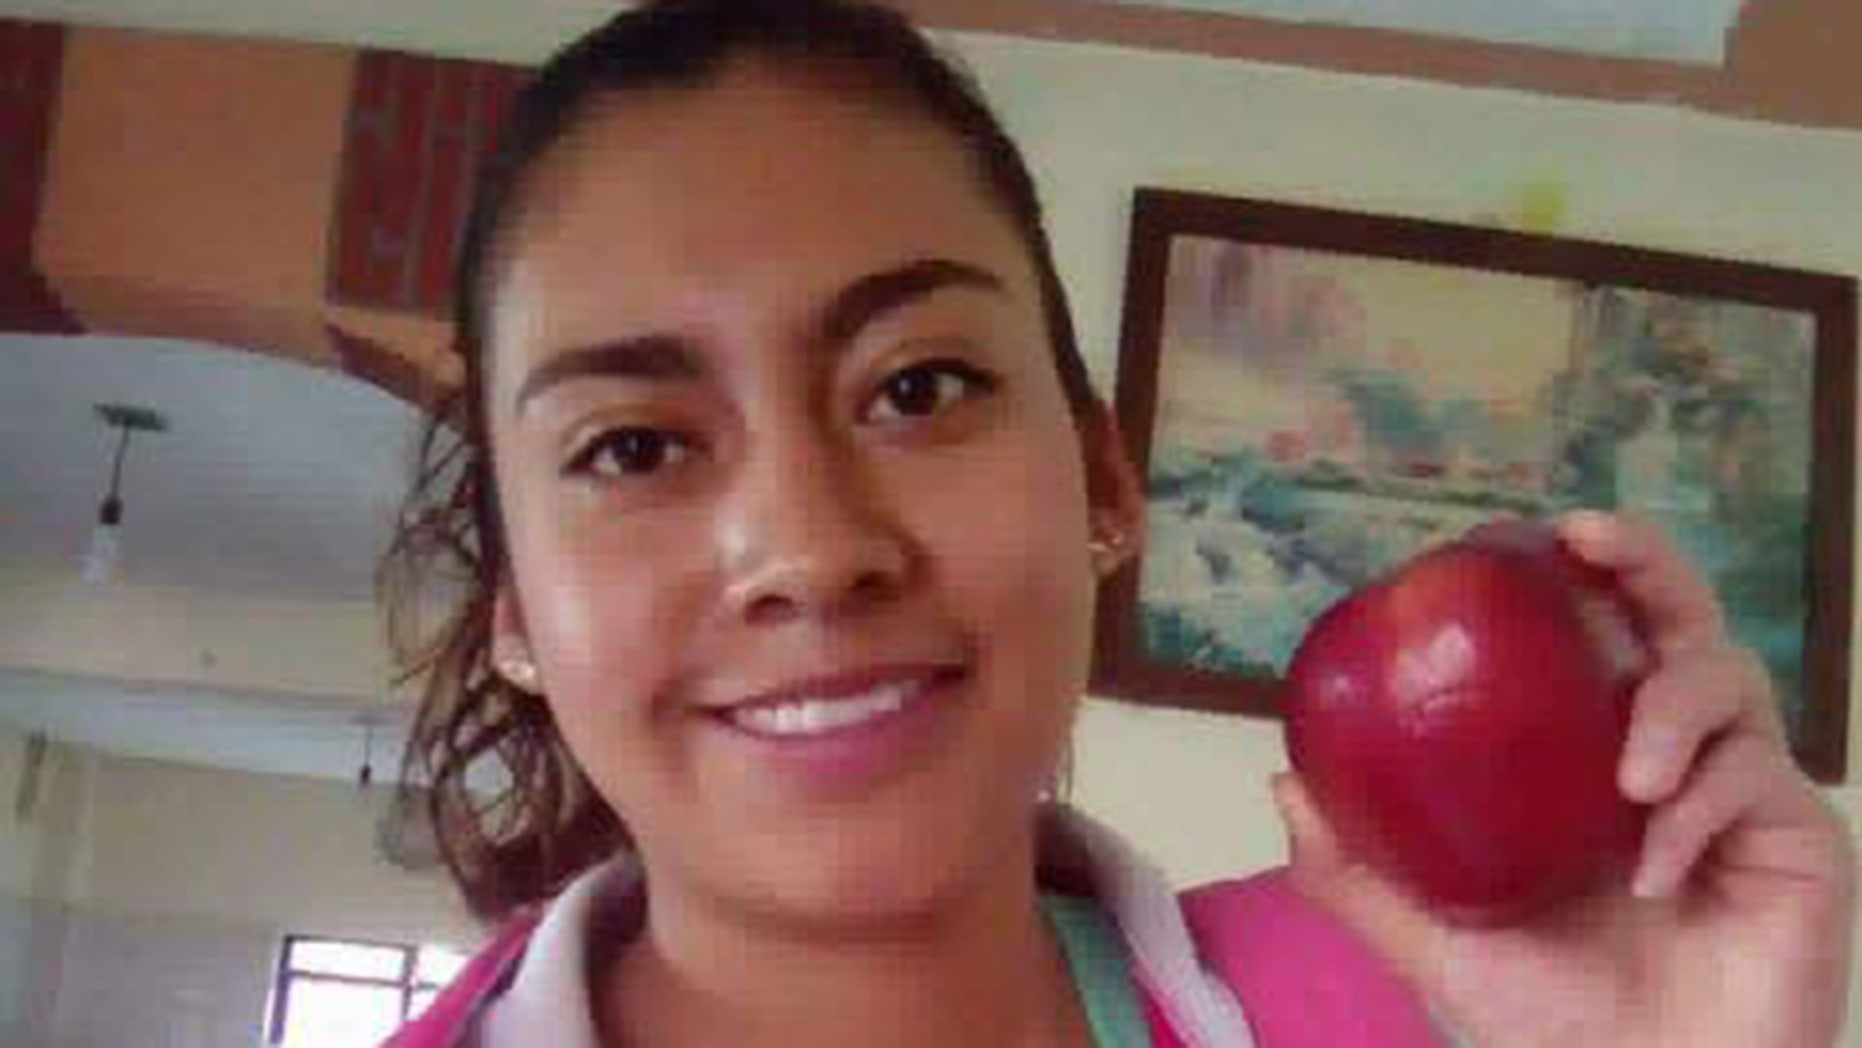 The dismembered remains of Magdalena Aguilar Romero, 25, were discovered at her ex-husband's home.